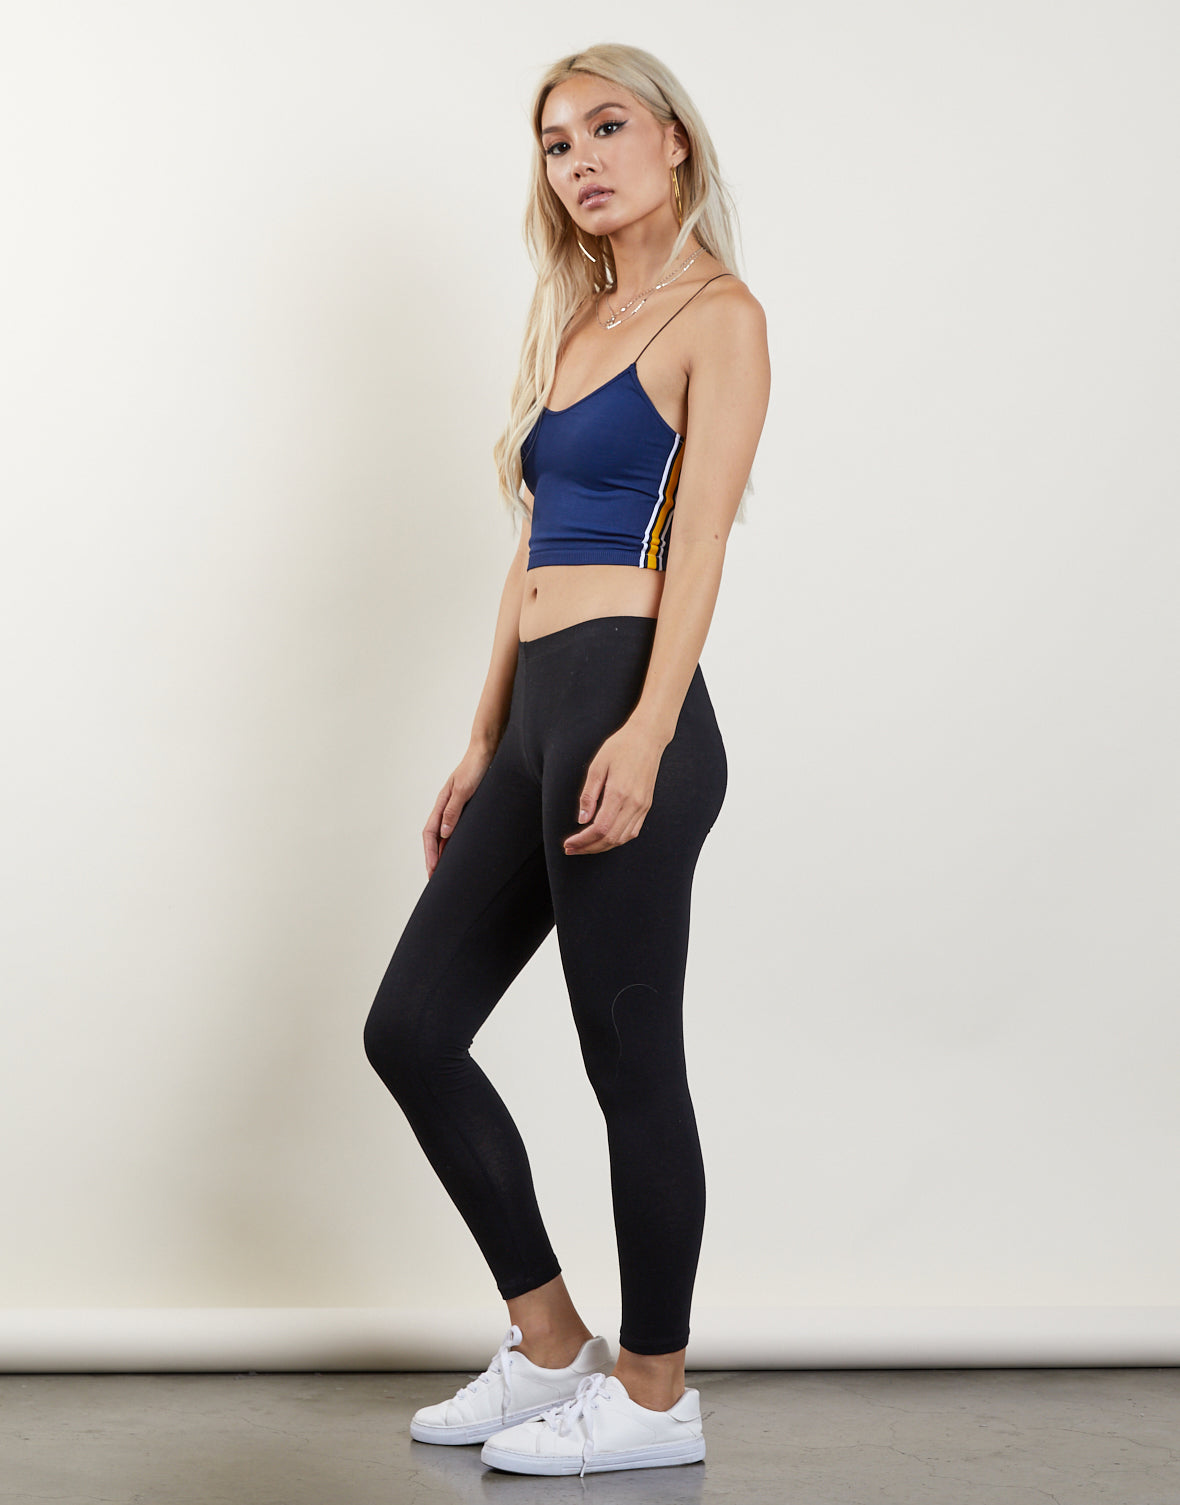 Stretch It Out Sporty Crop Top